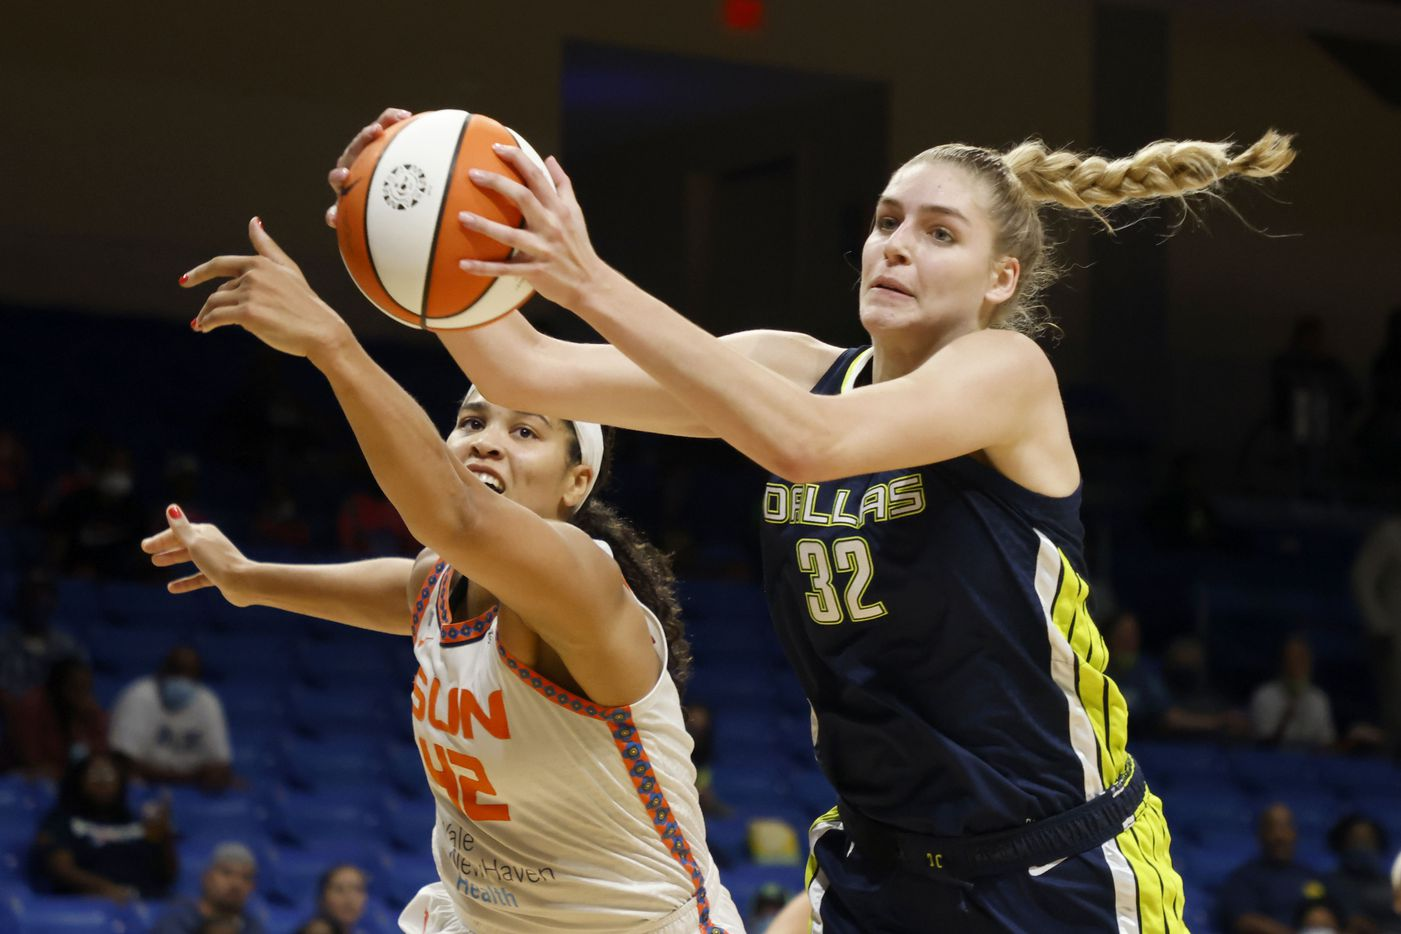 Dallas Wings center/forward Bella Alarie (32) grabs a rebound in front of Connecticut Sun forward Brionna Jones (42) during the first half of a WNBA basketball game in Arlington, Texas on Tuesday, Sept. 07, 2021. (Michael Ainsworth/Special Contributor)